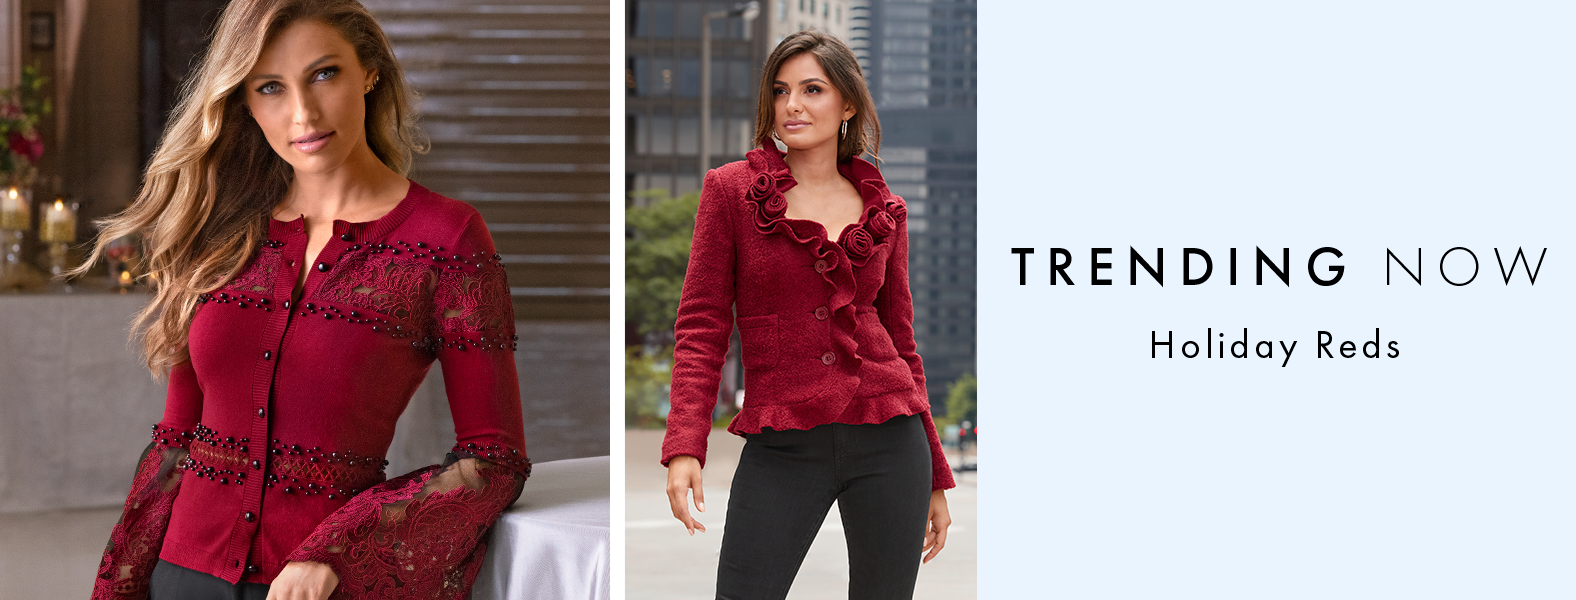 left model wearing a deep red flare sleeve lace and jewel embellished cardigan. right model wearing a red ruffle and rosette cardigan and black pants. text: trending now. holiday reds.